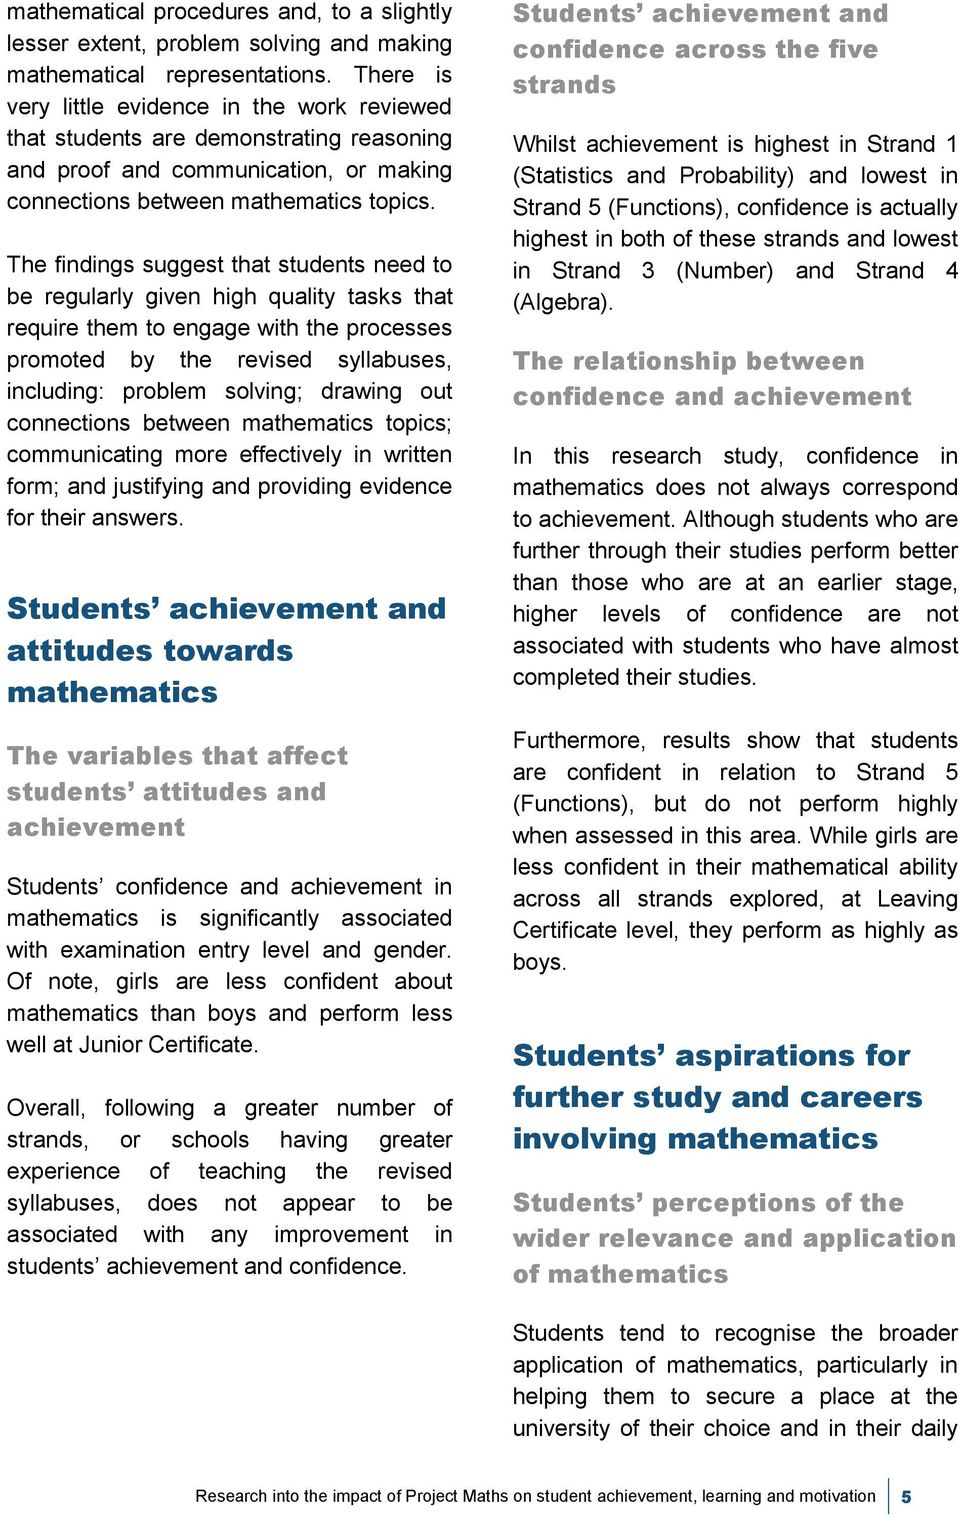 The findings suggest that students need to be regularly given high quality tasks that require them to engage with the processes promoted by the revised syllabuses, including: problem solving; drawing